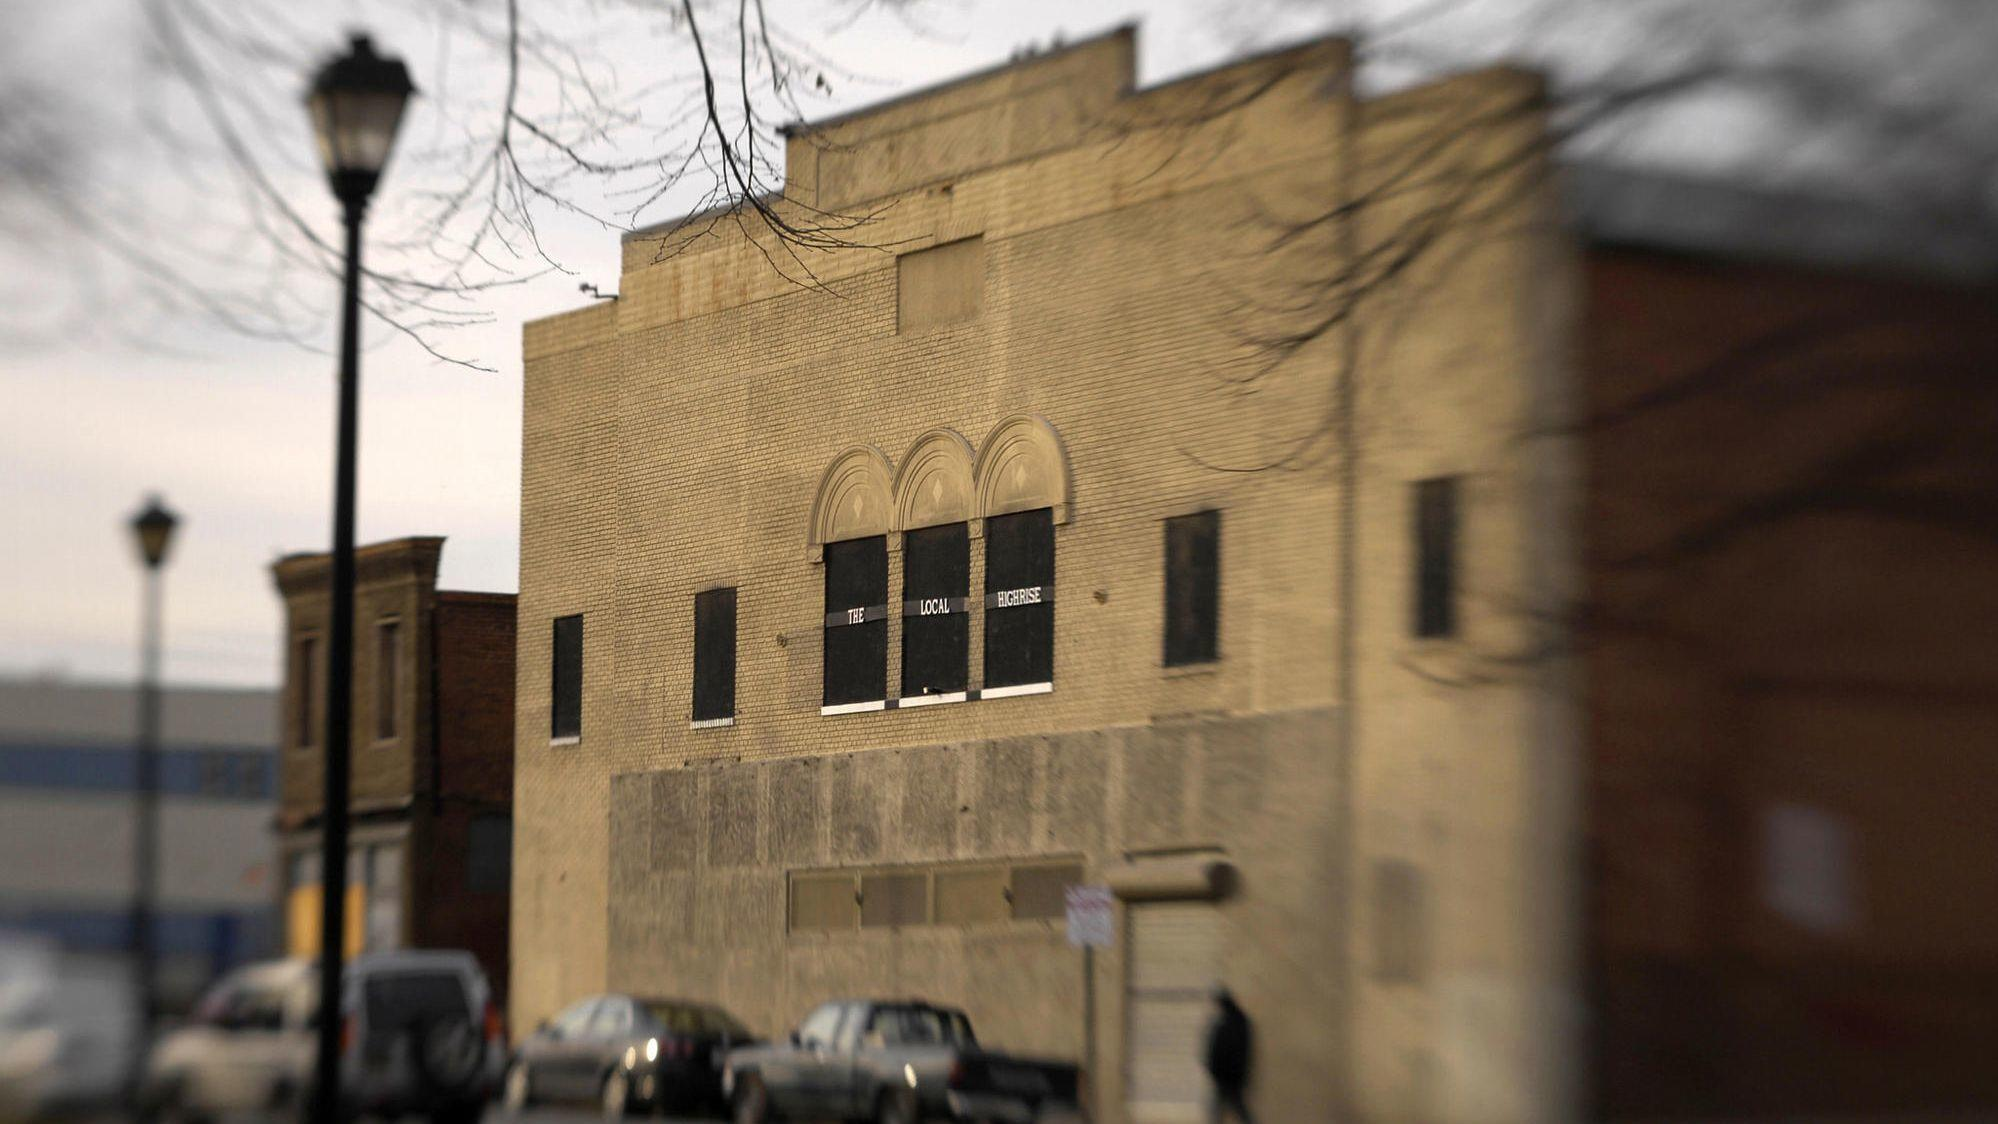 baltimoresun.com - Ian Duncan - Baltimore approves $1.25 million to turn old movie theater into hub for growing Hispanic community